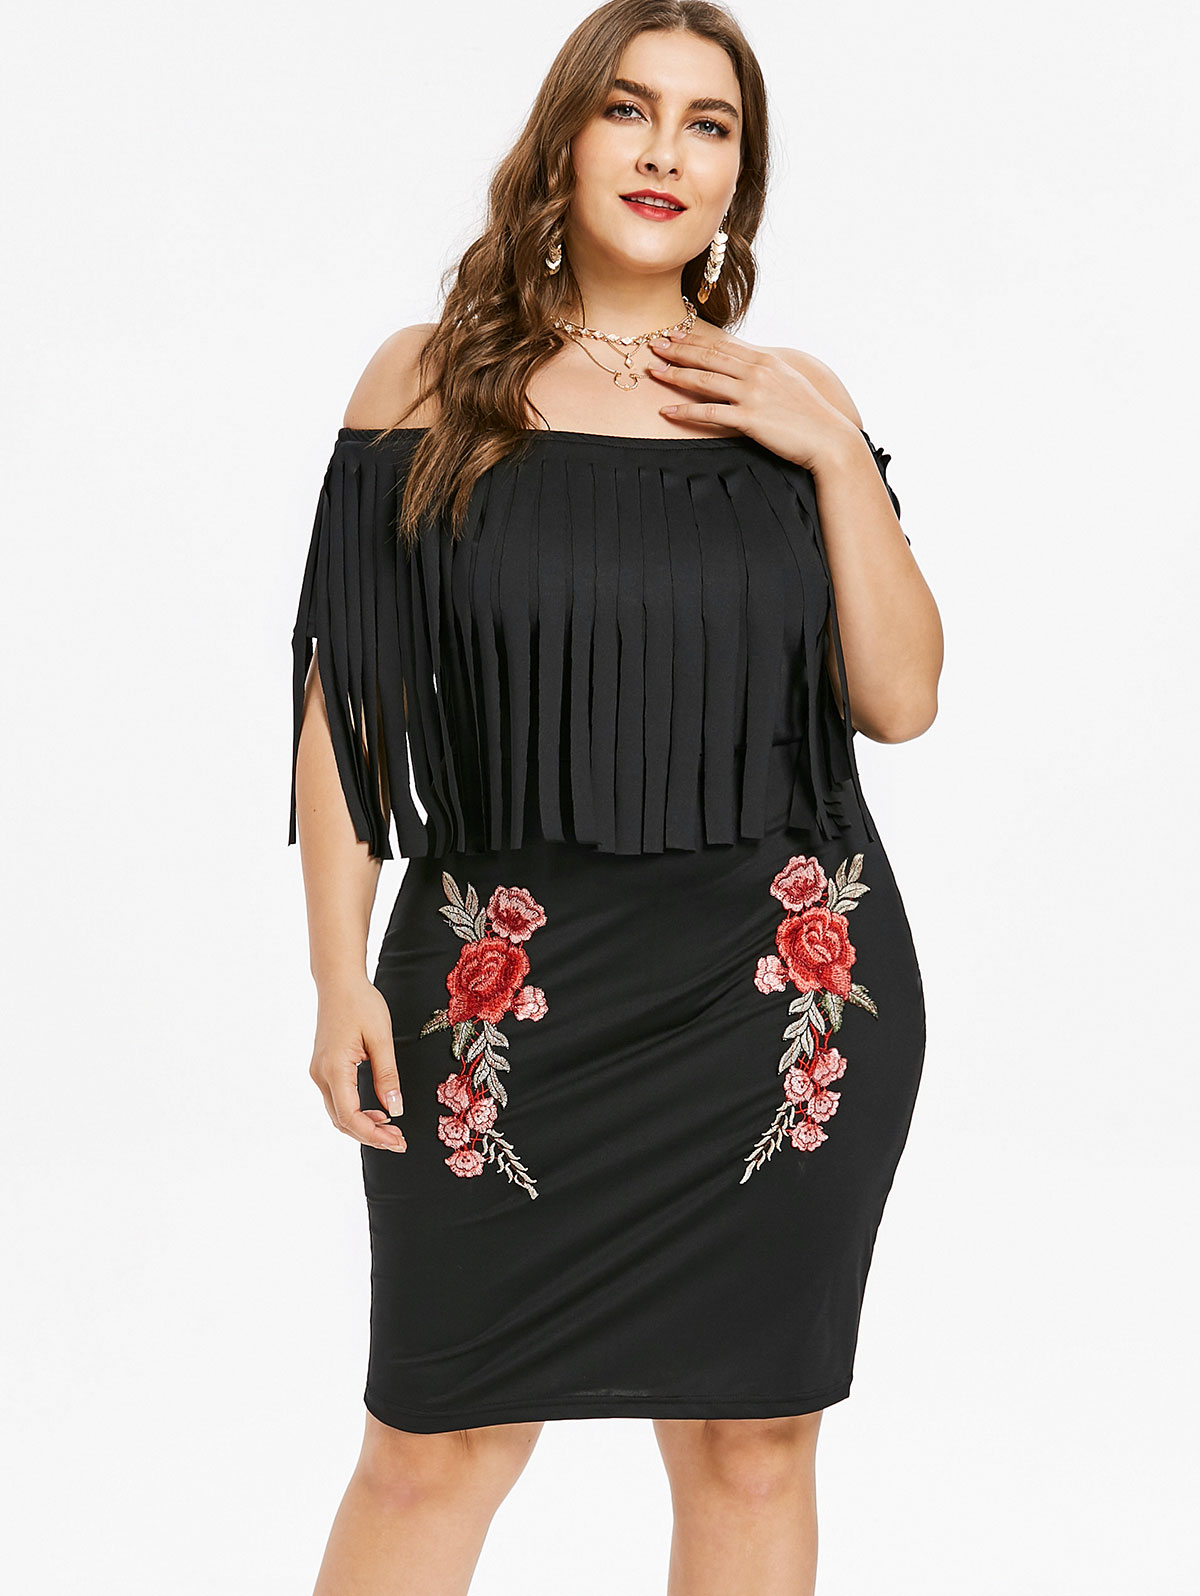 86d869cb816 4XL Plus Size Fringed Floral Embroidered Bodycon Dress Knee Length Short  Sleeves Dress Slash Neck Tassel Dress